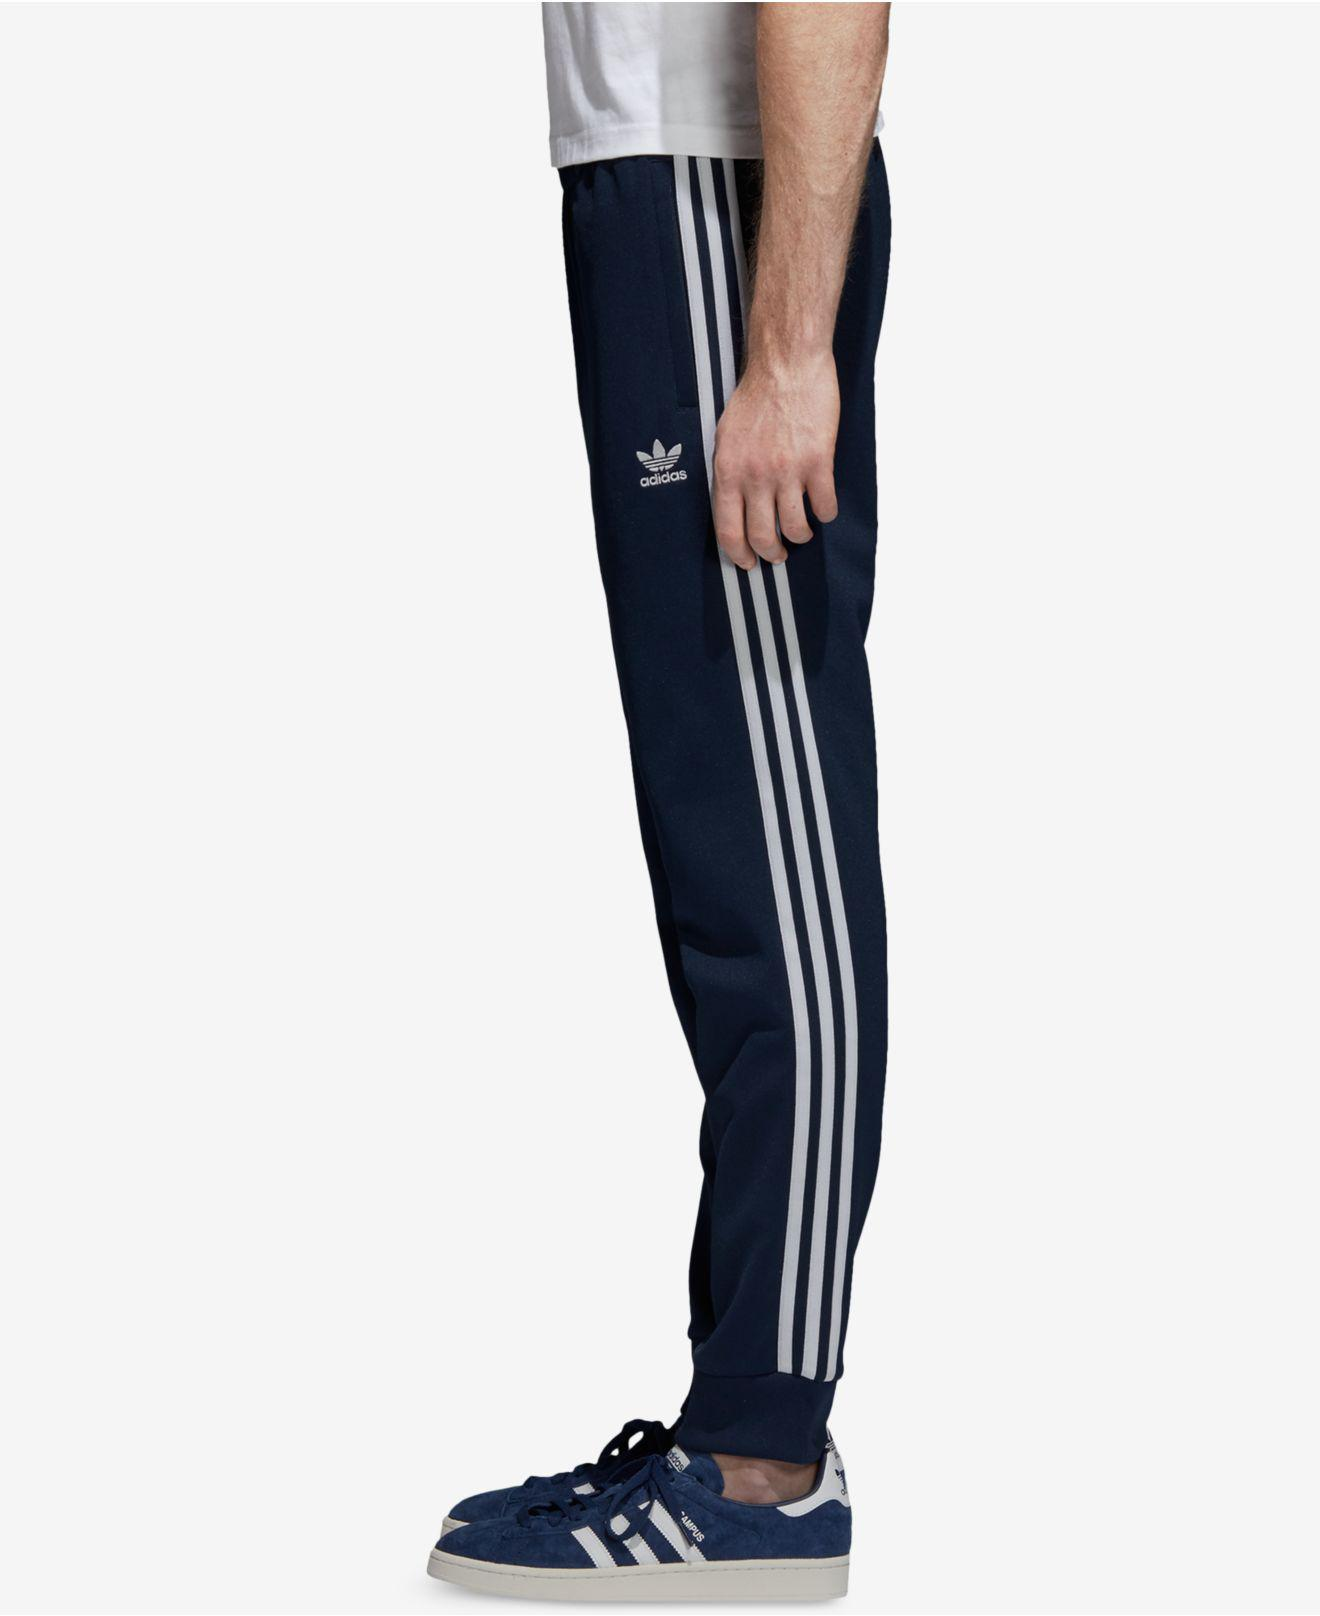 Lyst adidas Originals Adicolor Track Pants in Blue for Men